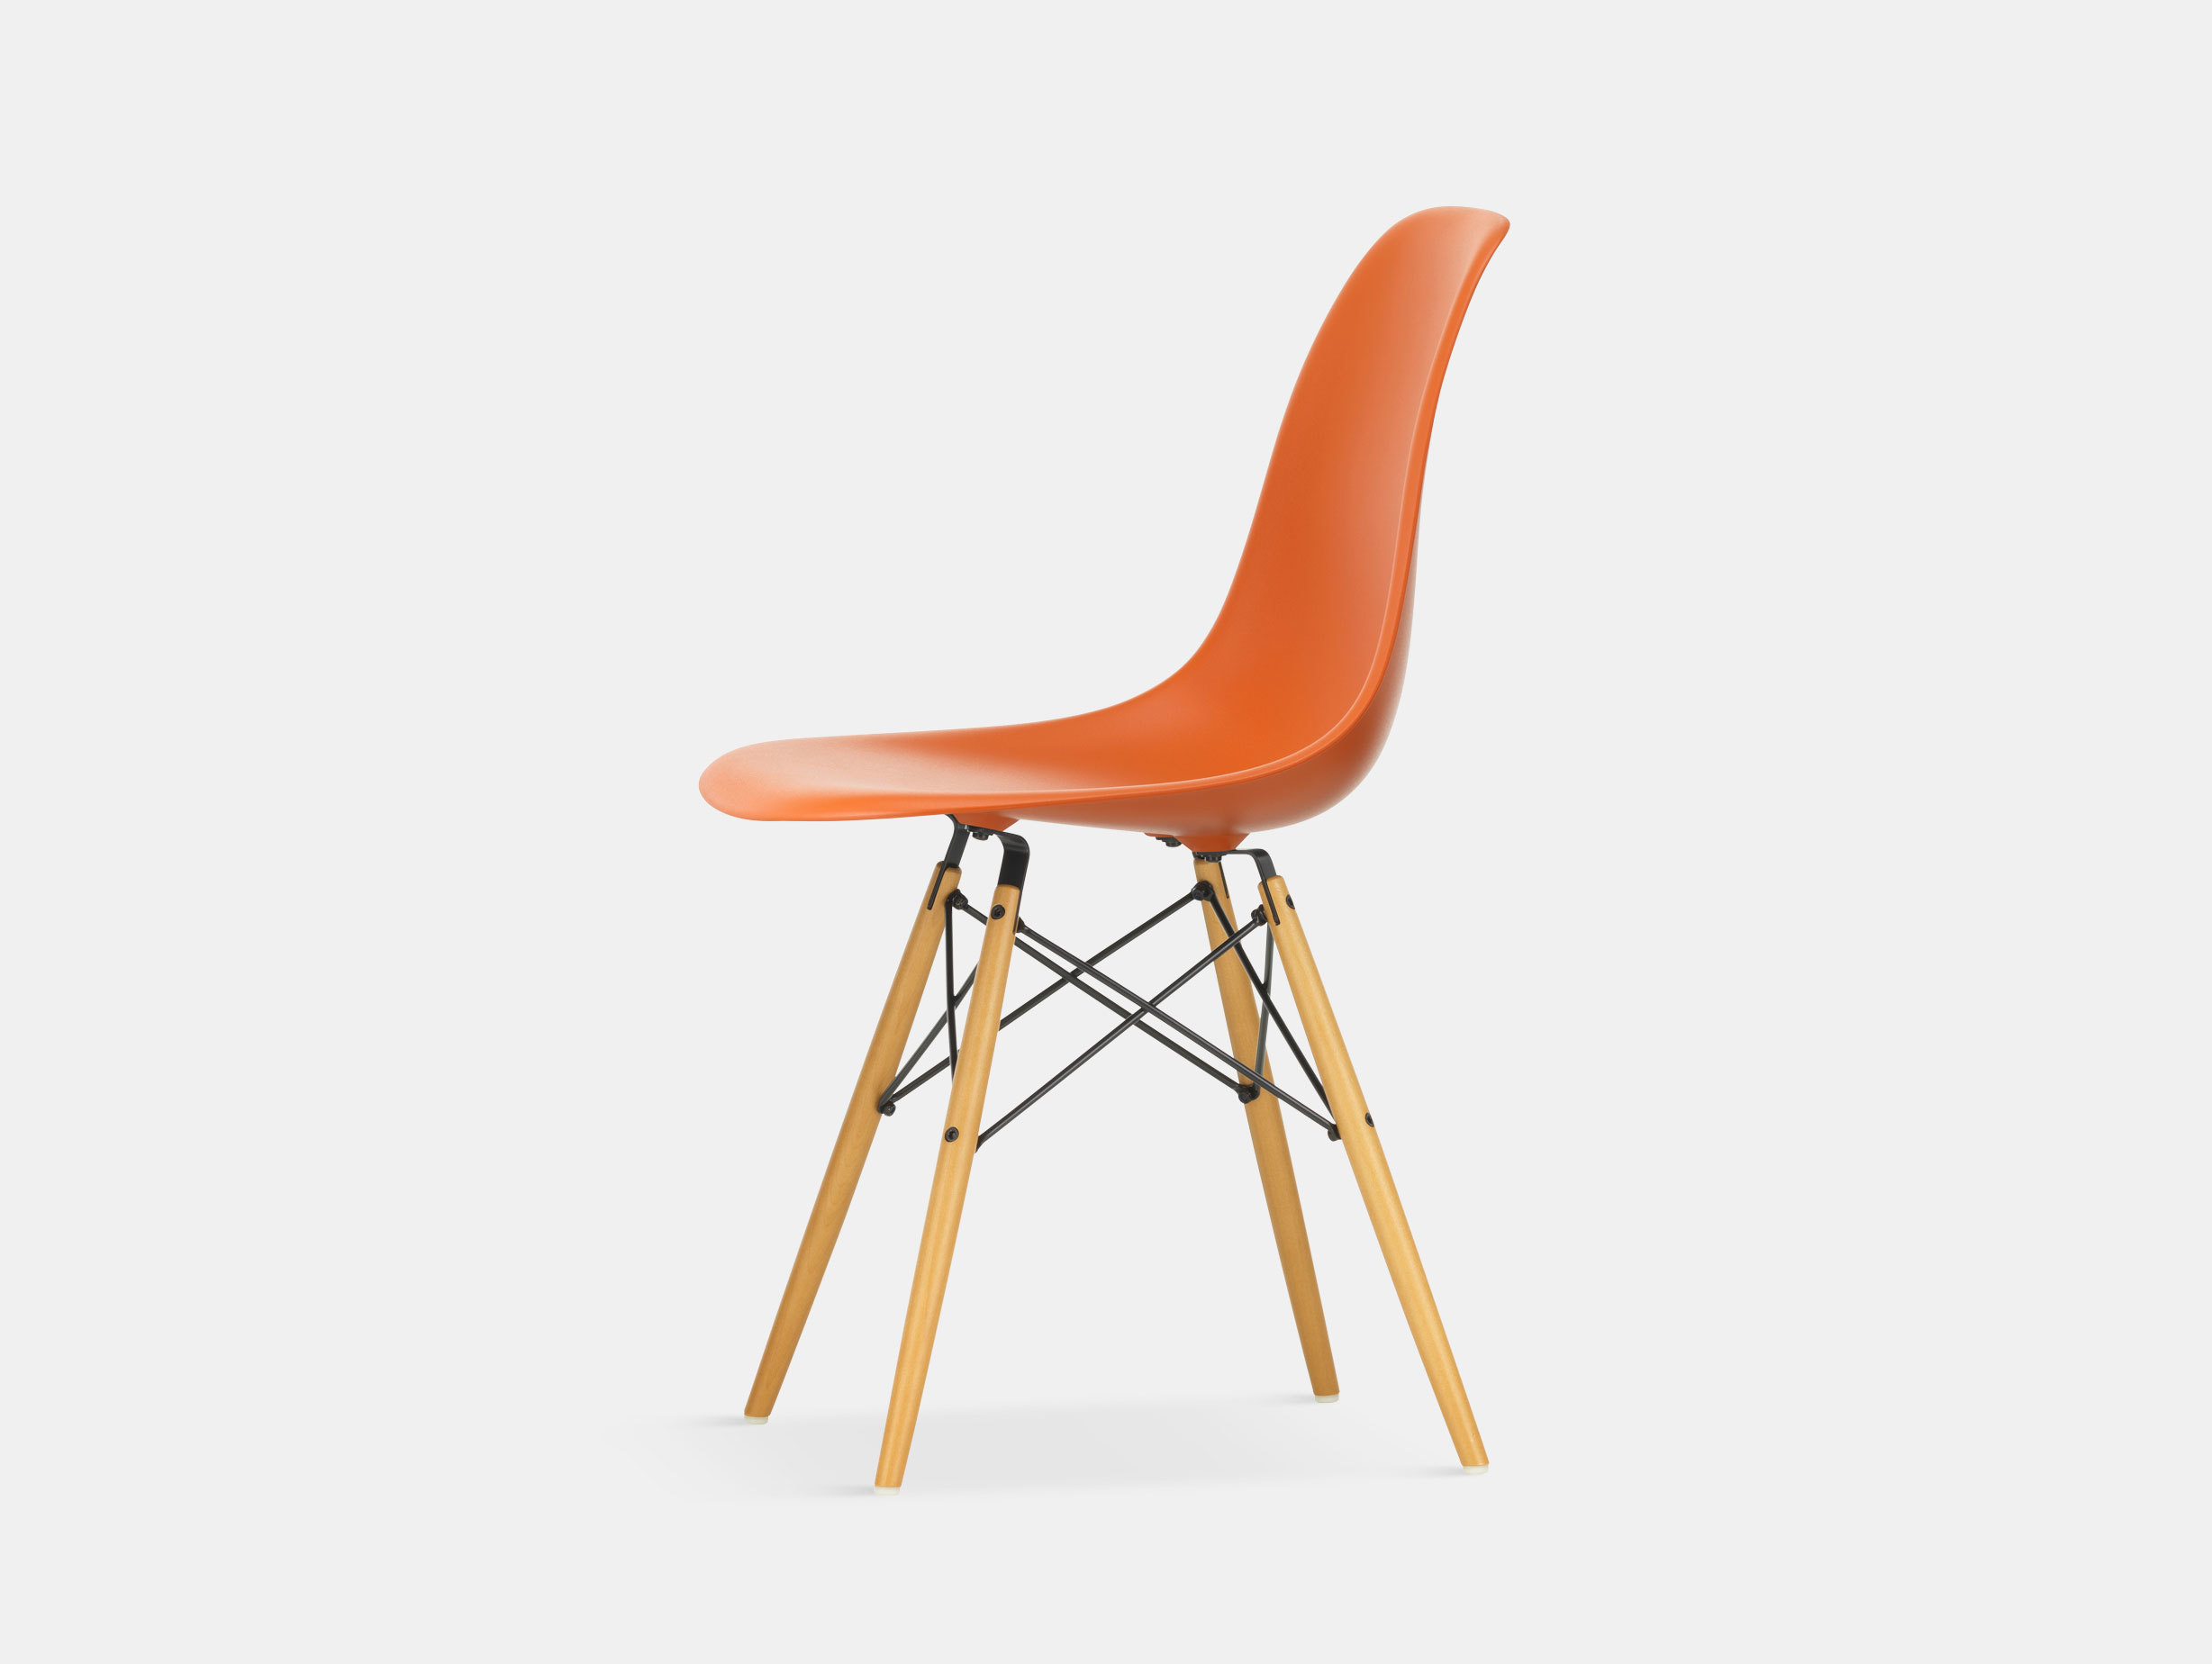 Vitra Eames DSW Plastic Side Chair rusty orange golden maple legs